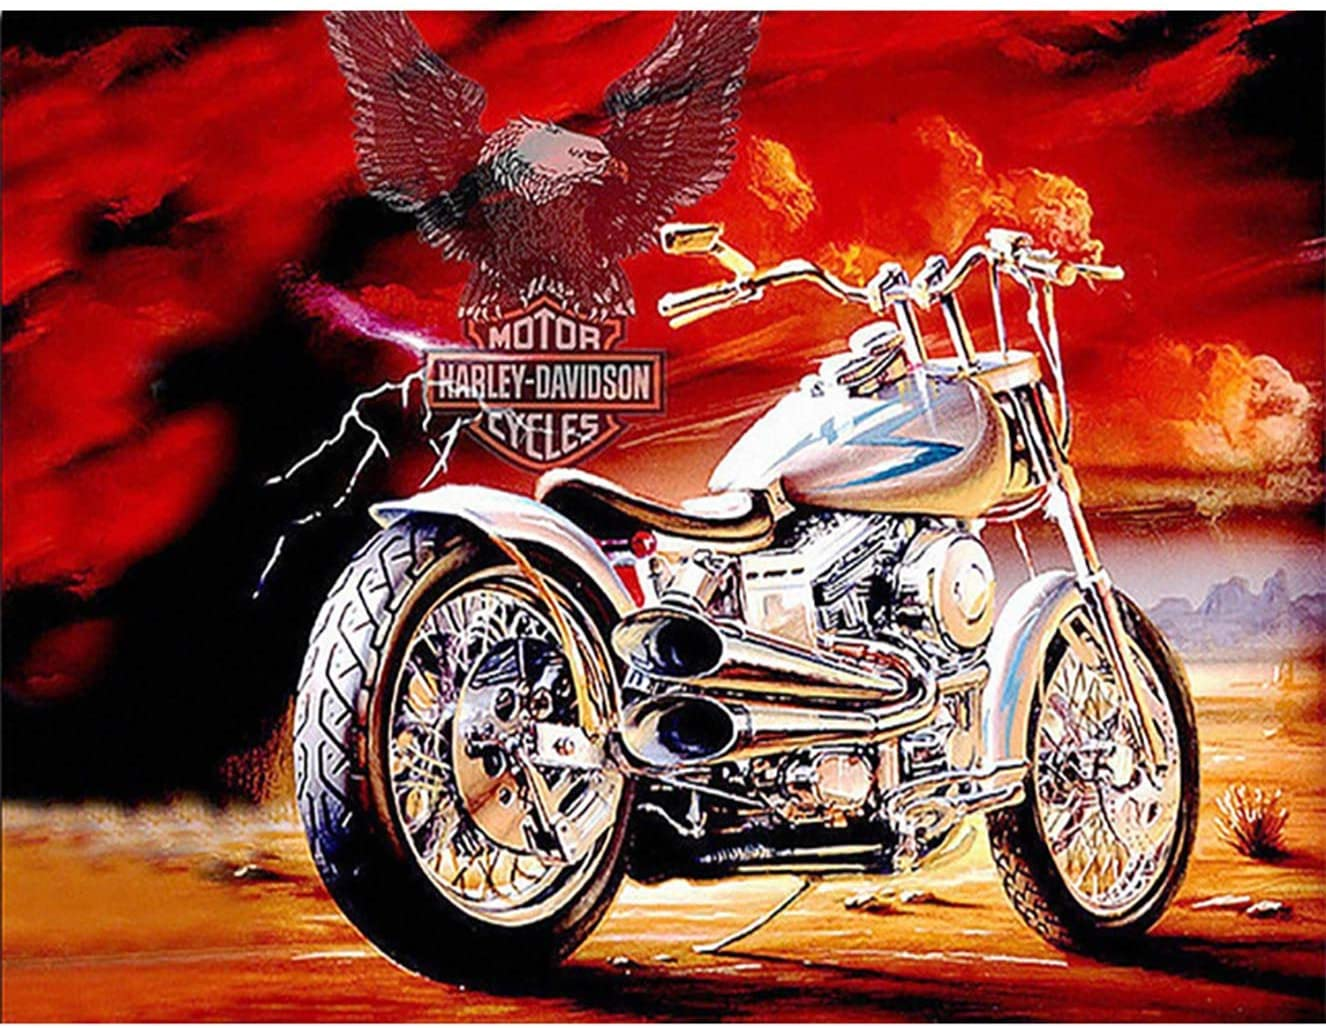 Bimkole DIY 5D Diamond Painting Kit Motorcycle by Number Kits Paint with Diamonds Arts DIY for Home Decor, 12X16 inch(m3-486)